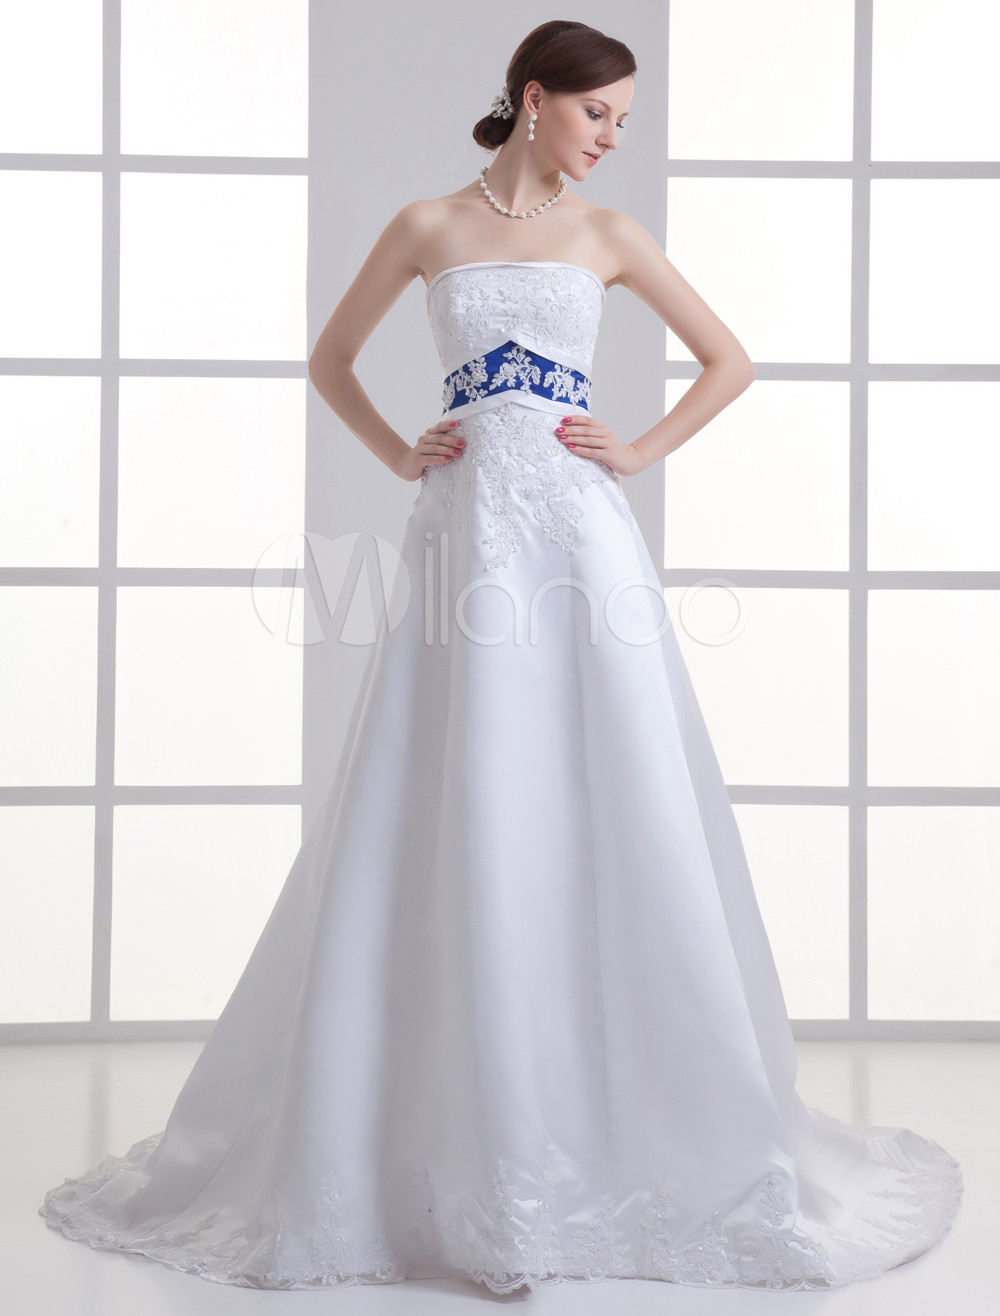 White strapless sequin blue sash satin bridal wedding gown for Blue sash for wedding dress